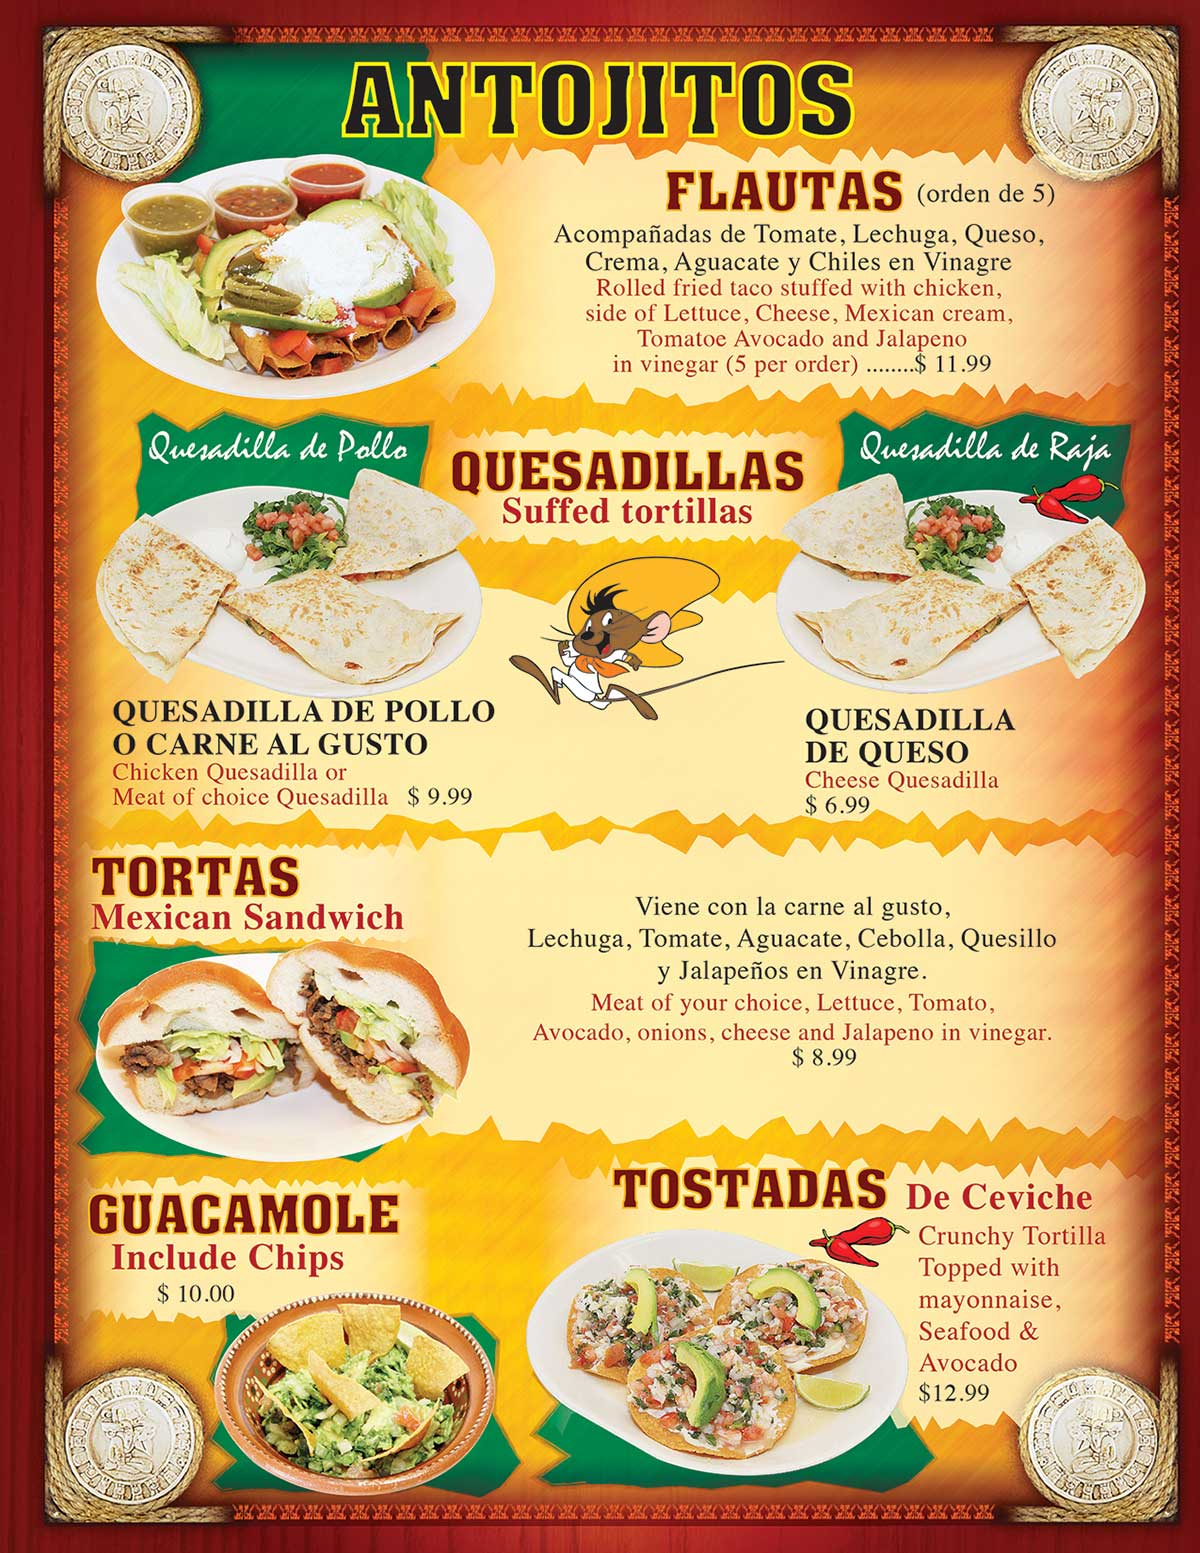 TACOS MADRIGAL MENU PAGE 3